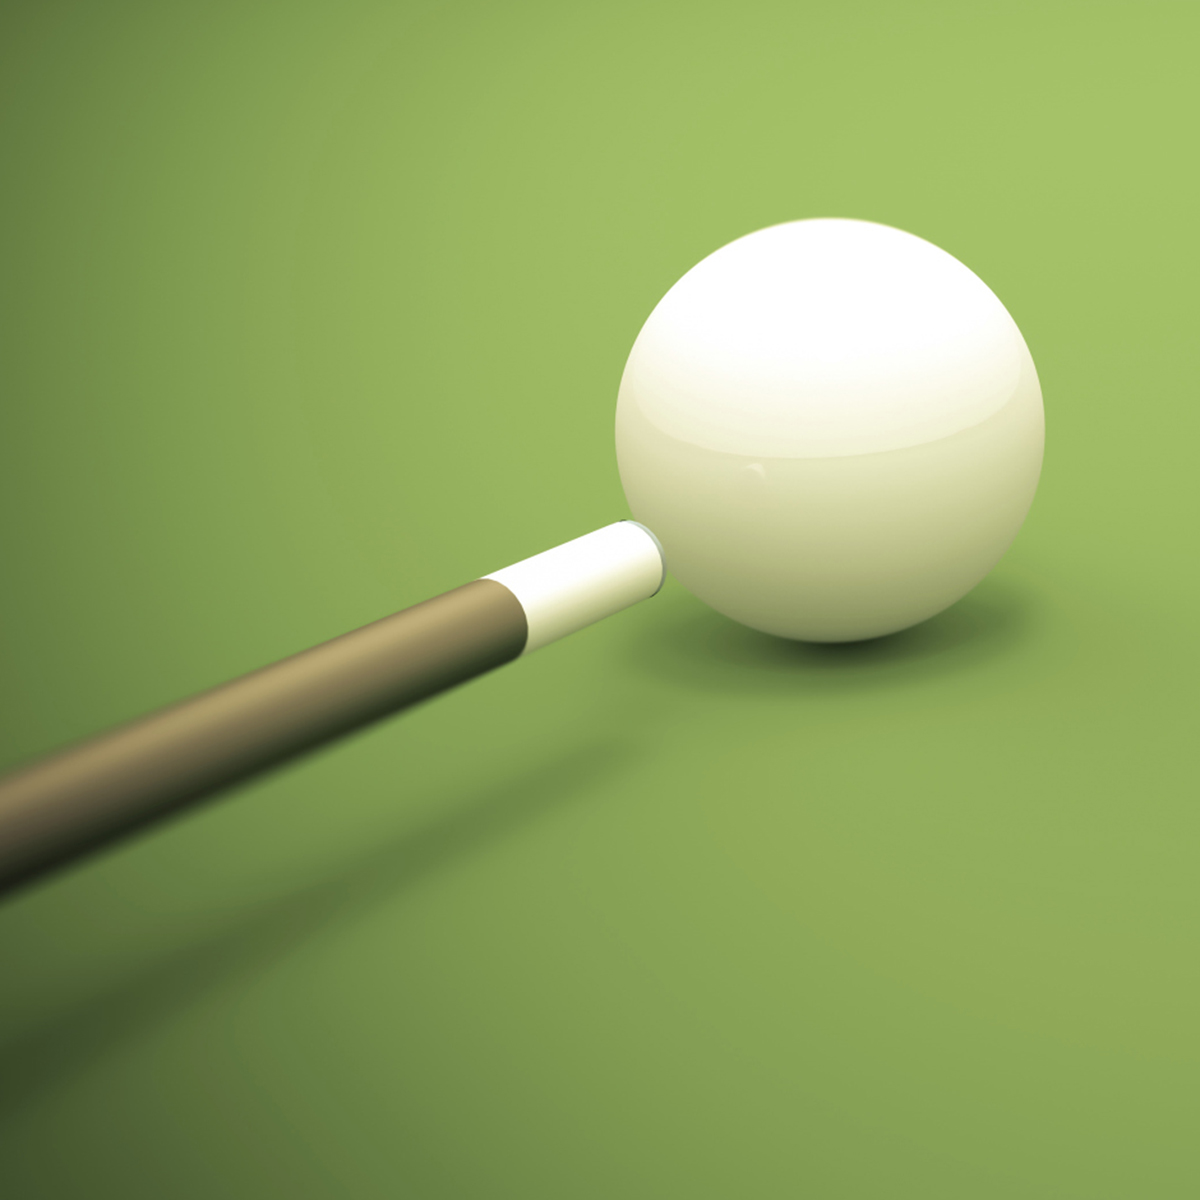 BAR BILLIARDS: Kennington's big fightback